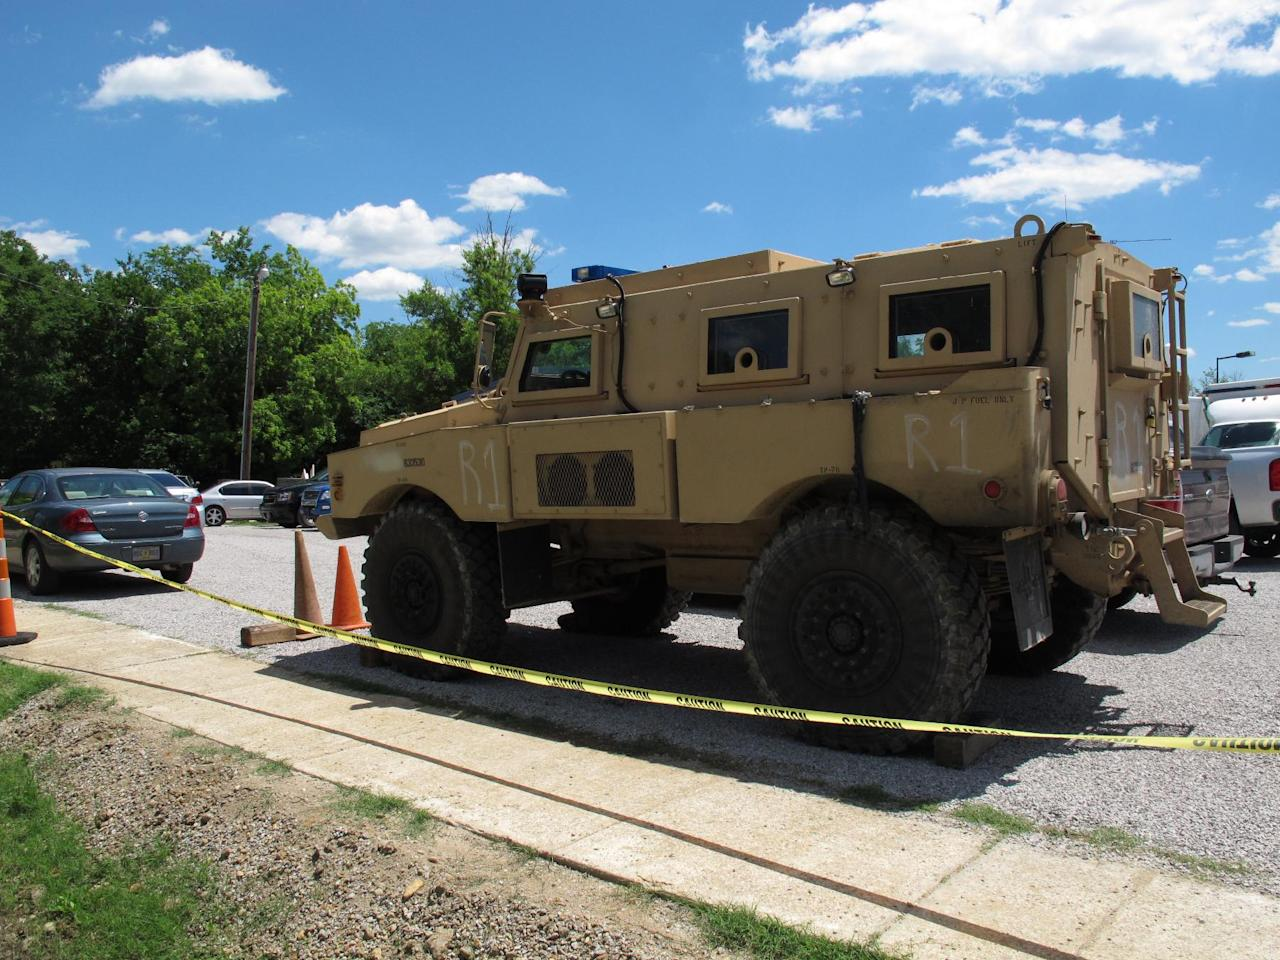 An armored vehicle sits in the parking lot of a command center set up to coordinate the search for two Tennessee girls and the man accused of abducting them and killing their mother and sister on Thursday May 10, 2012, in Guntown, Miss. The hunt for Adam Mayes and the two young sisters he is accused of kidnapping has encompassed parts of at least three counties in northern Mississippi. (AP Photo/Adrian Sainz)